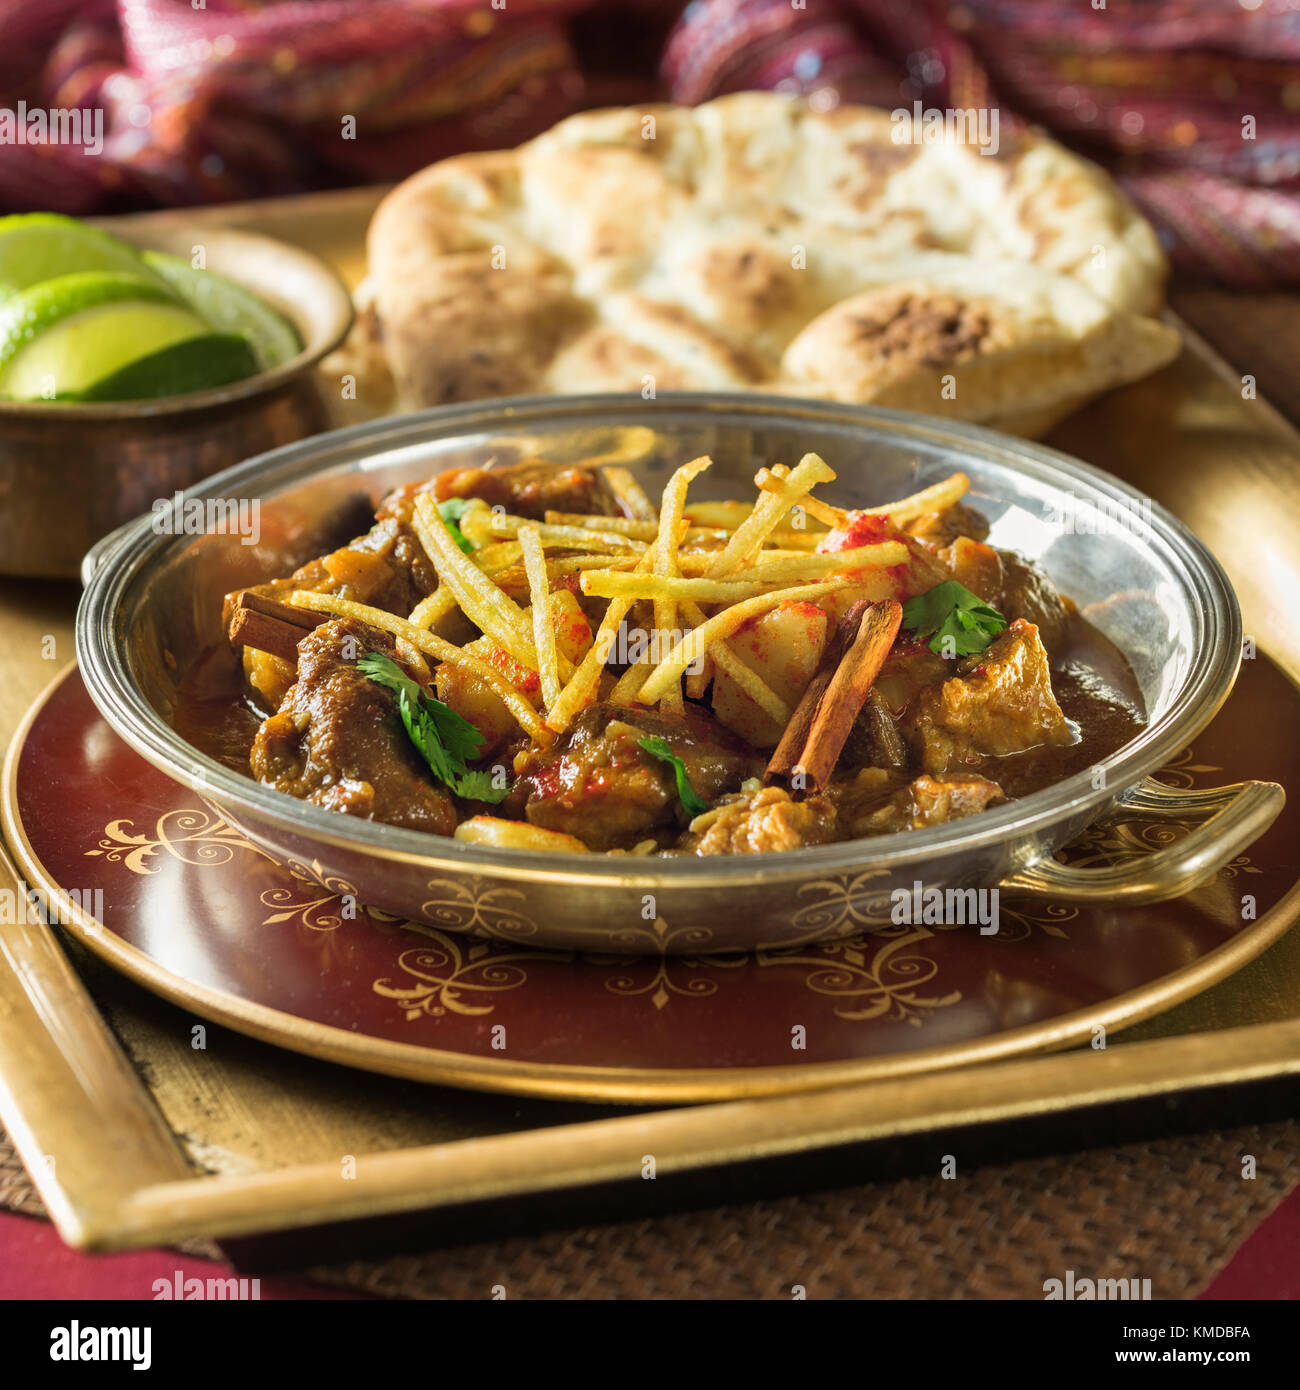 Indian railway mutton curry. India Food - Stock Image